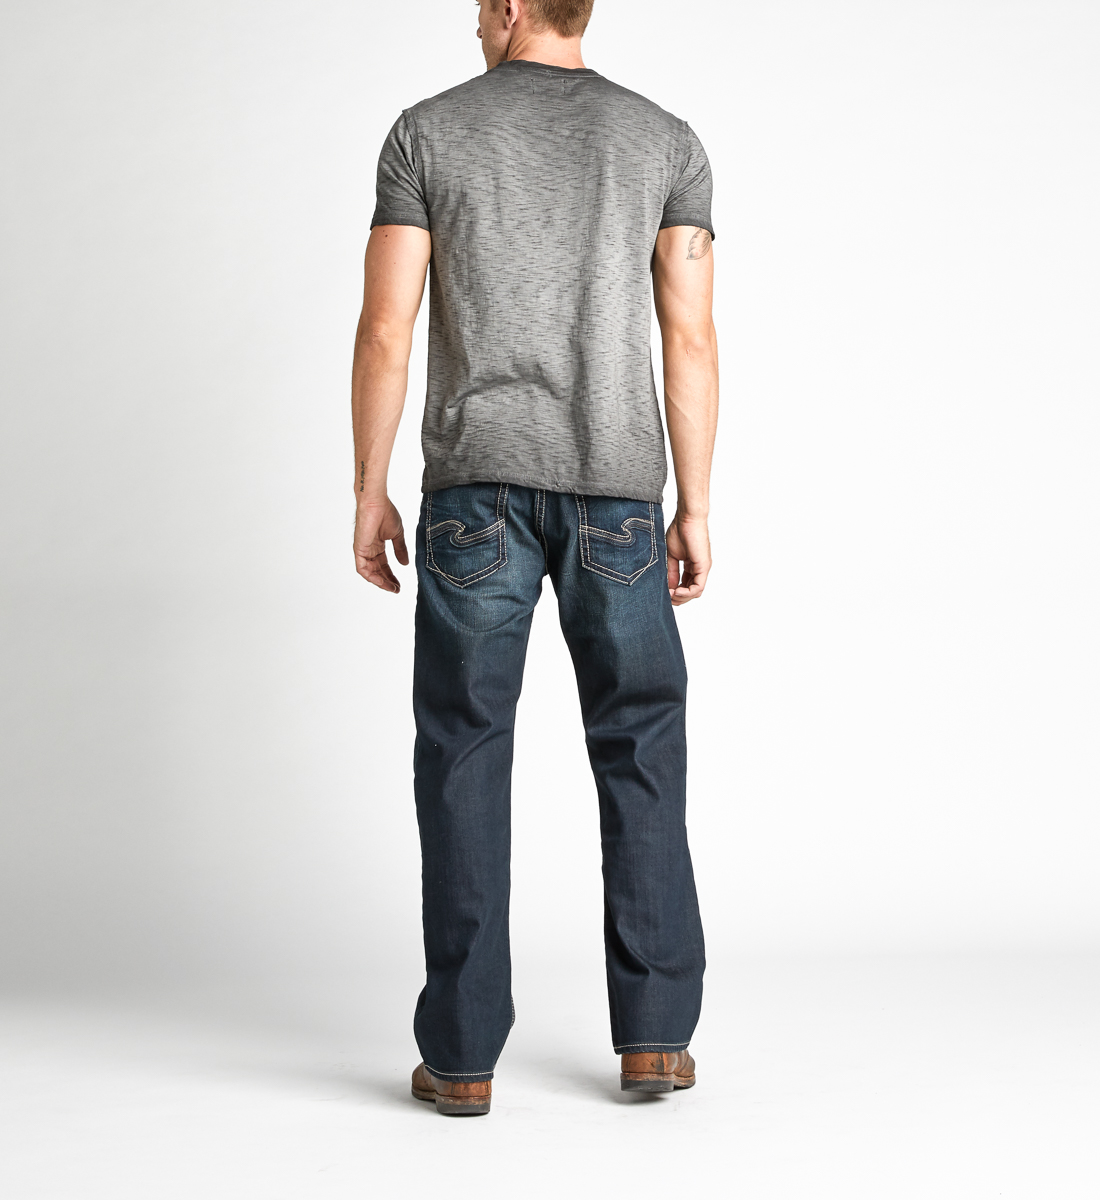 Koby Short-Sleeve Henley, Black, hi-res